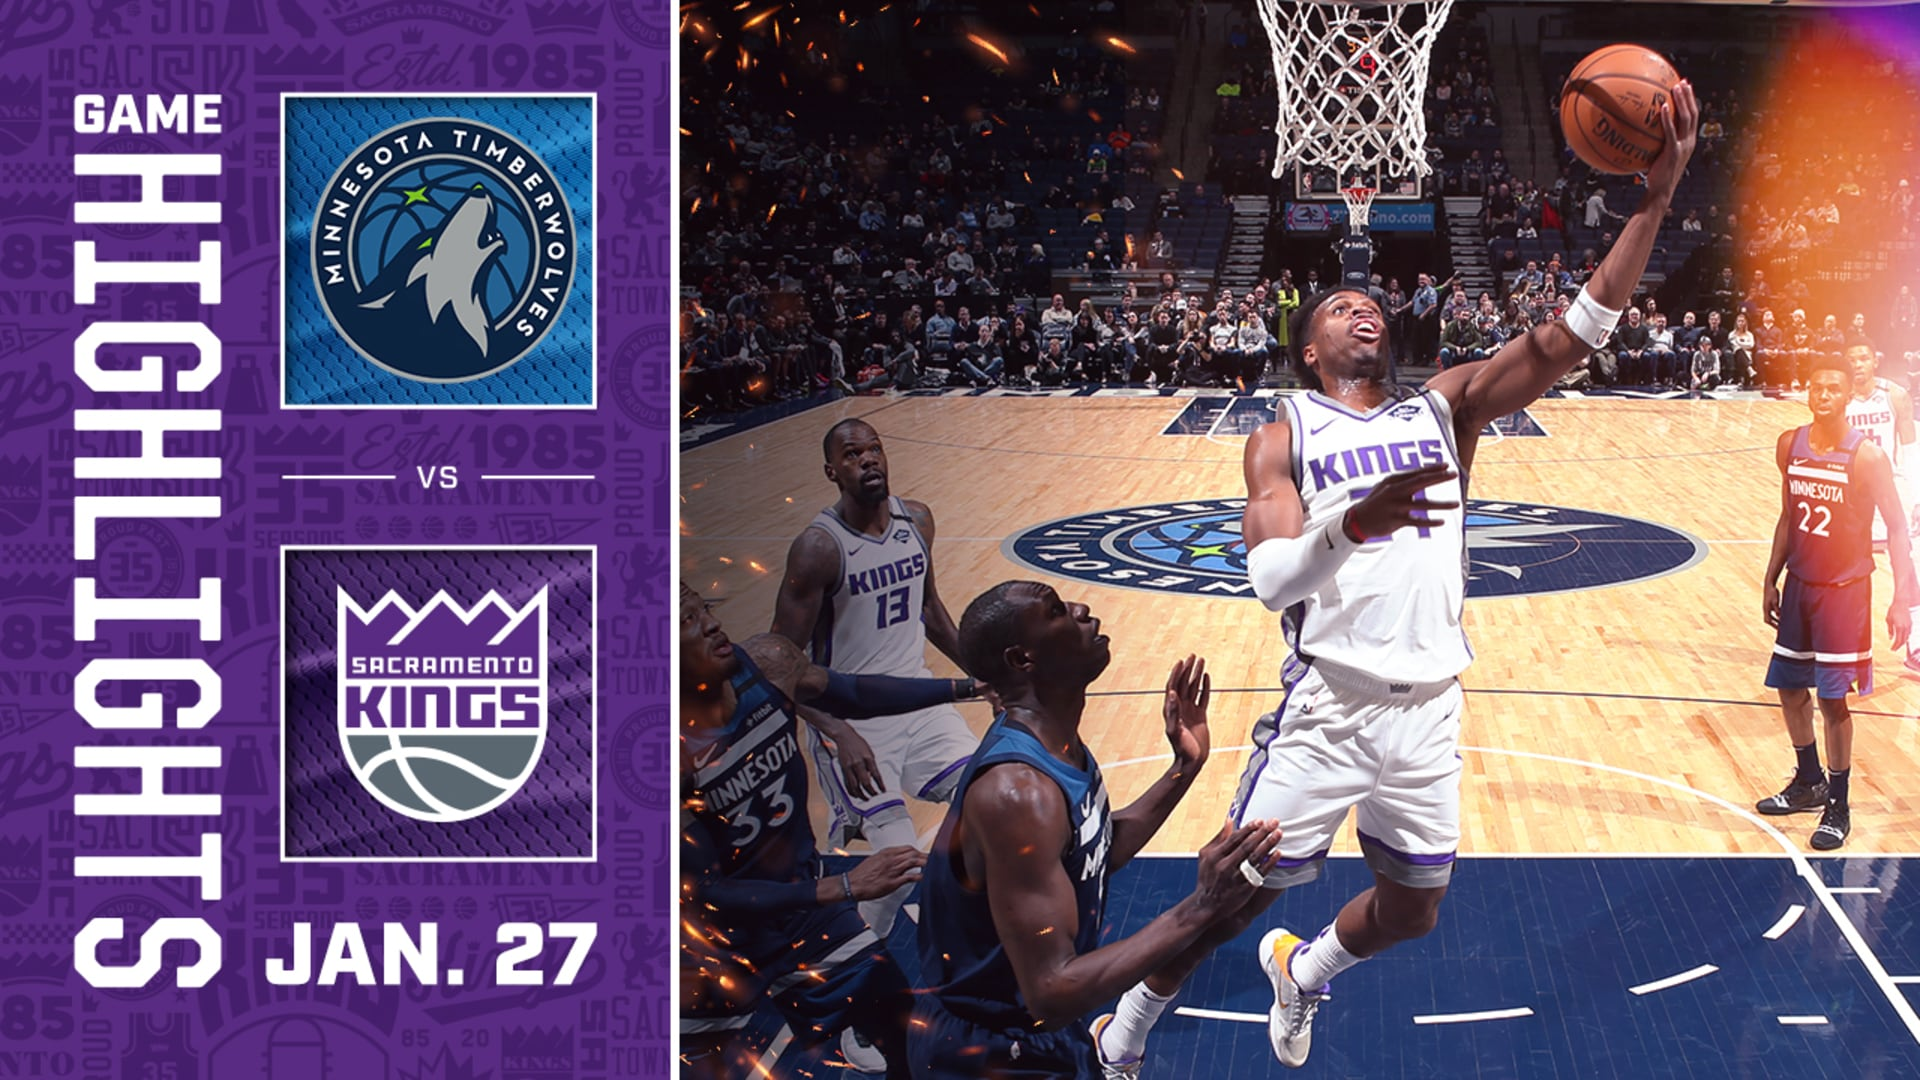 Kings Win in OT For Record-Breaking Night | Kings v Timberwolves